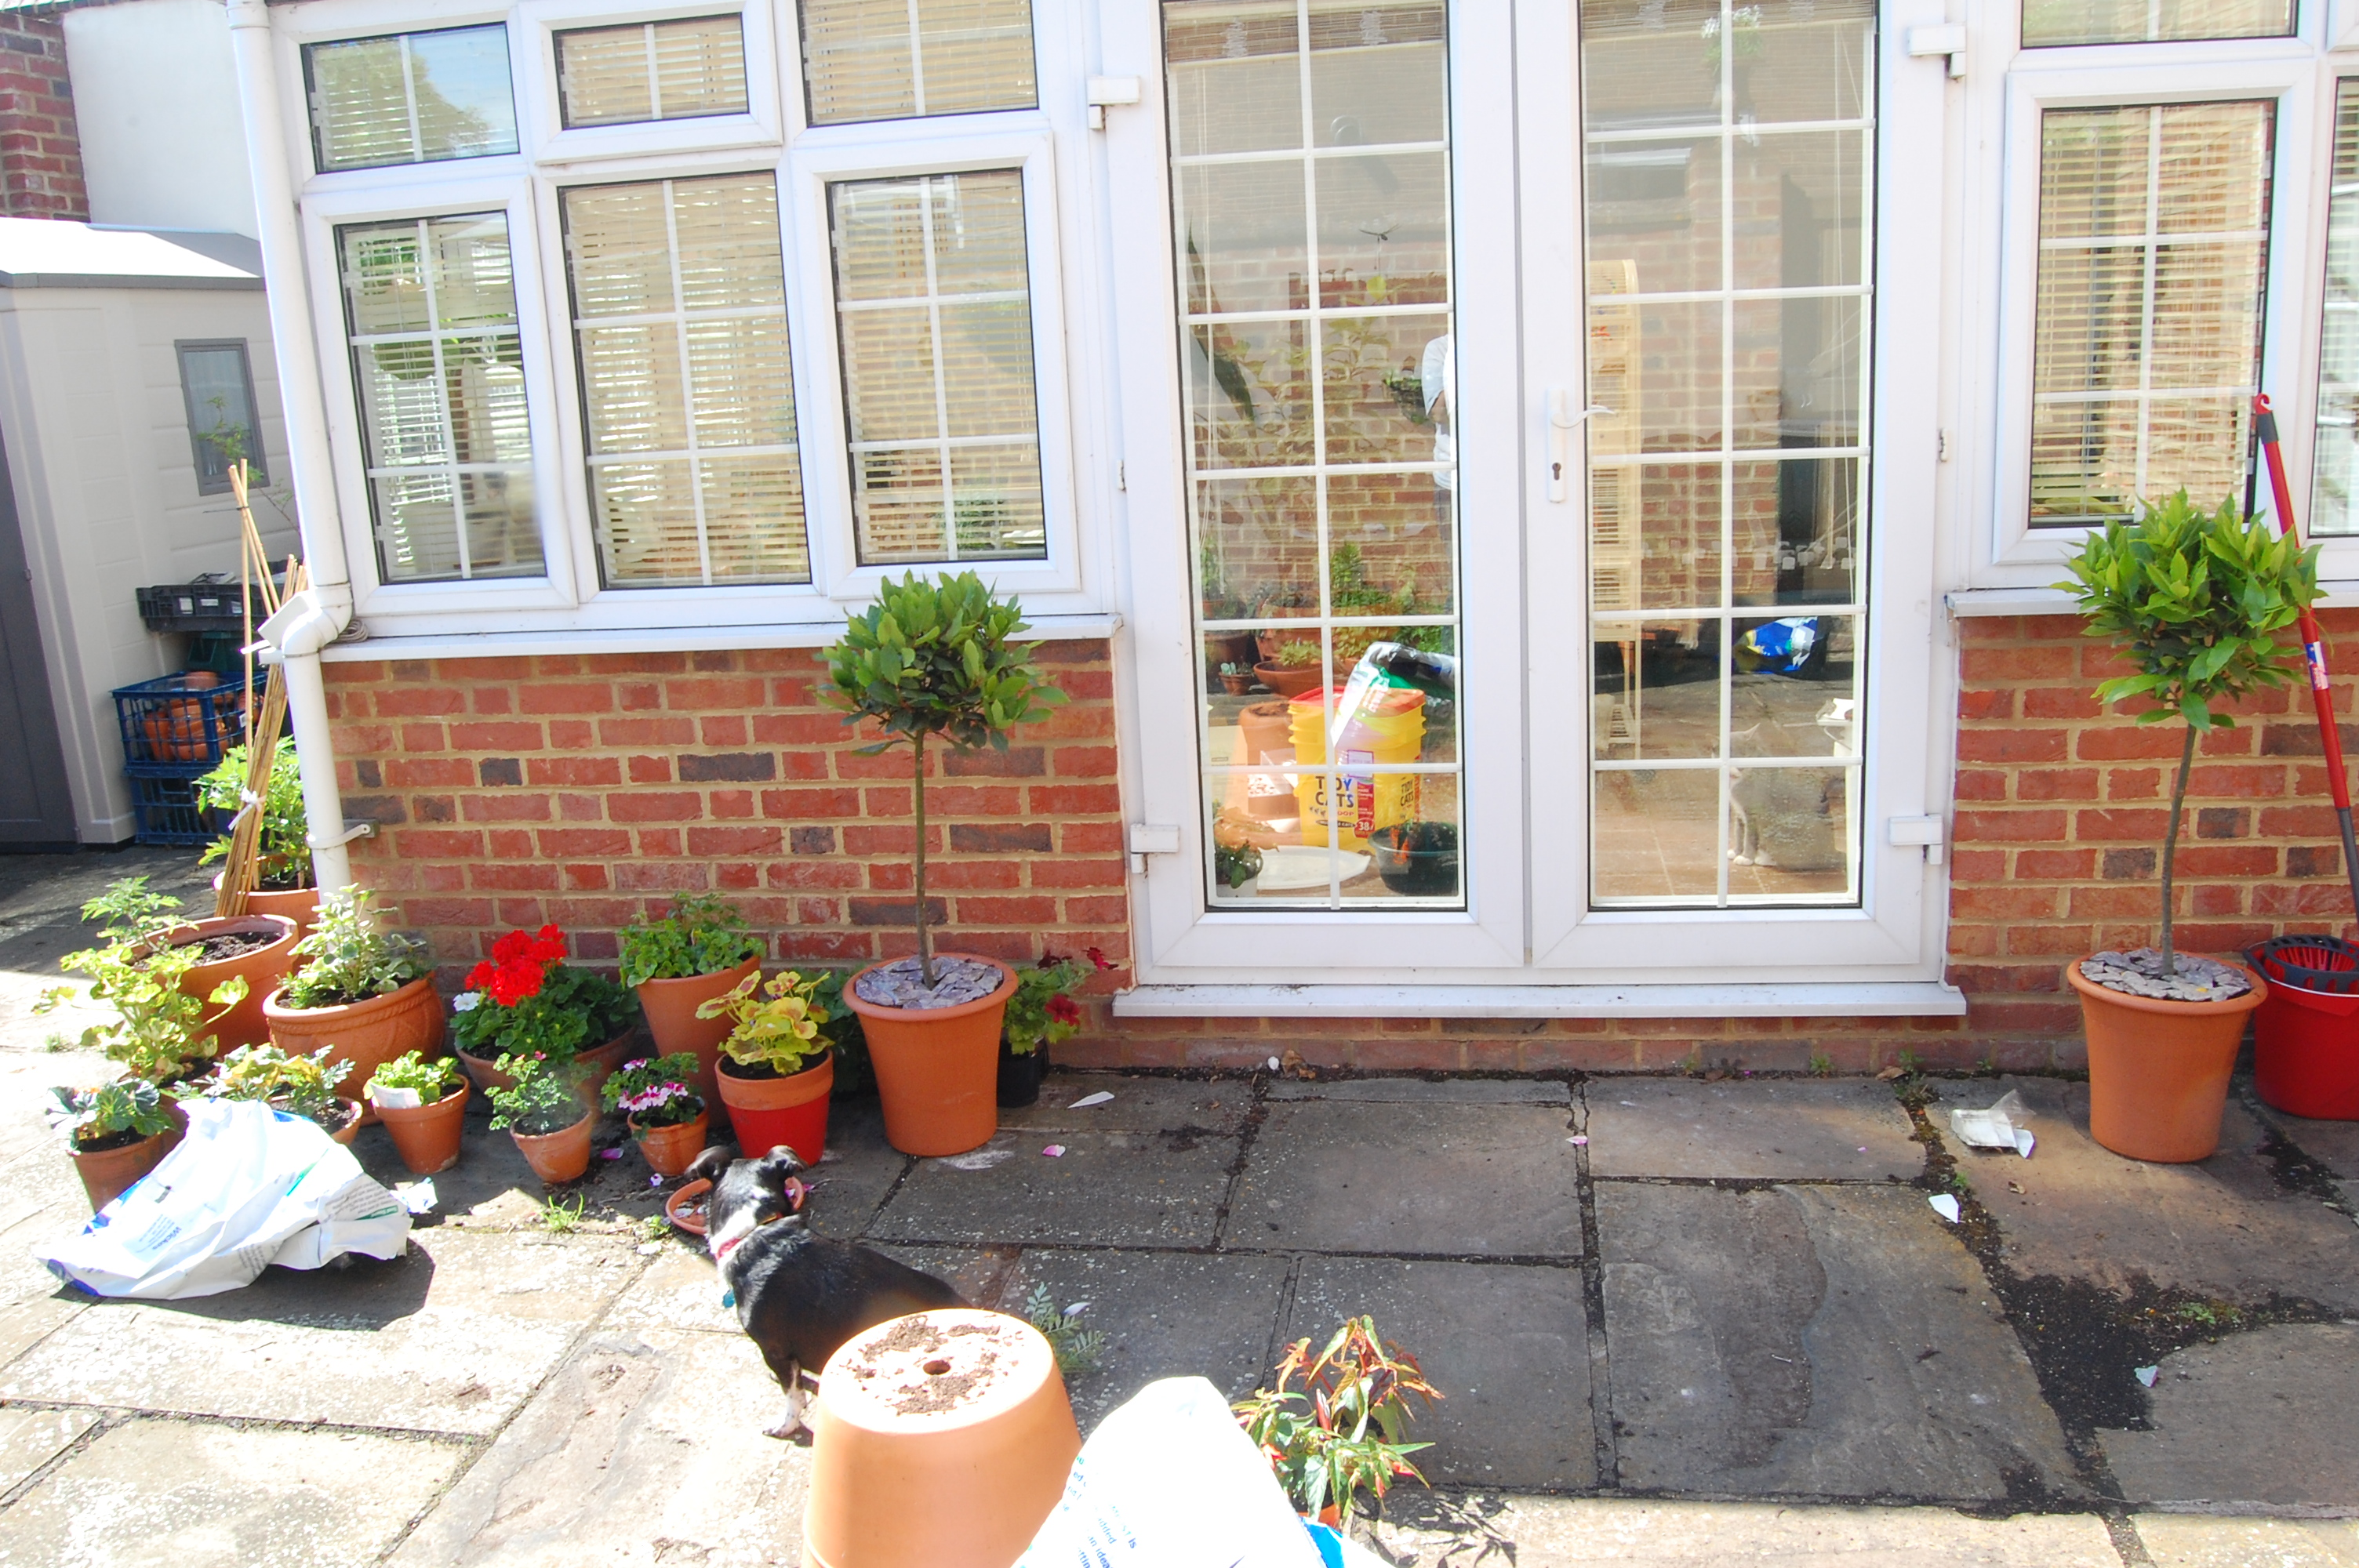 Two bay topiaries frame the conservatory door now